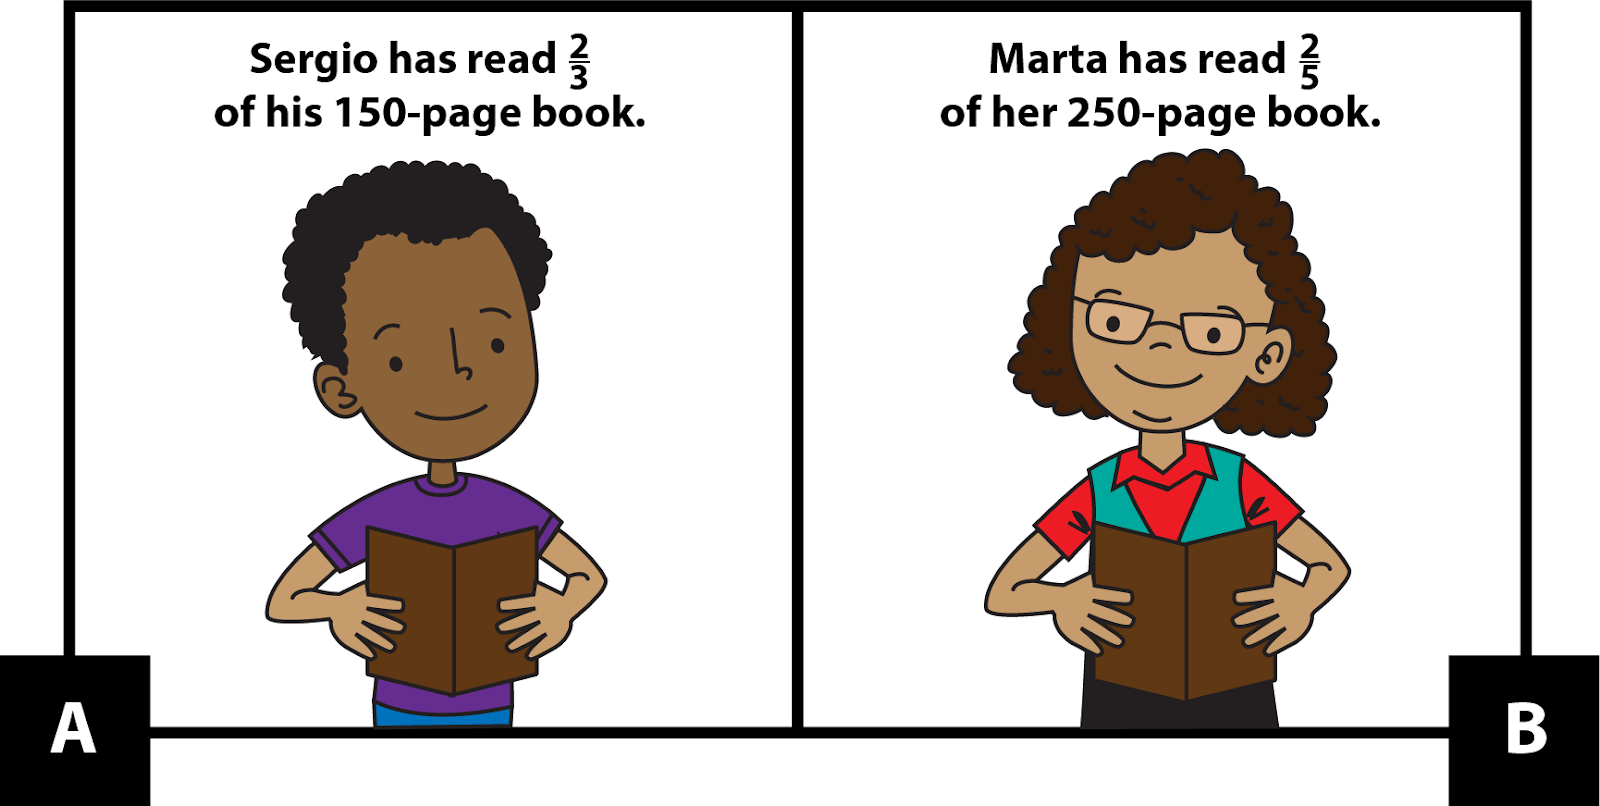 A: Sergio has read 2-thirds of his 150-page book. B: Marta has read 2-fifths of her 250-page book.